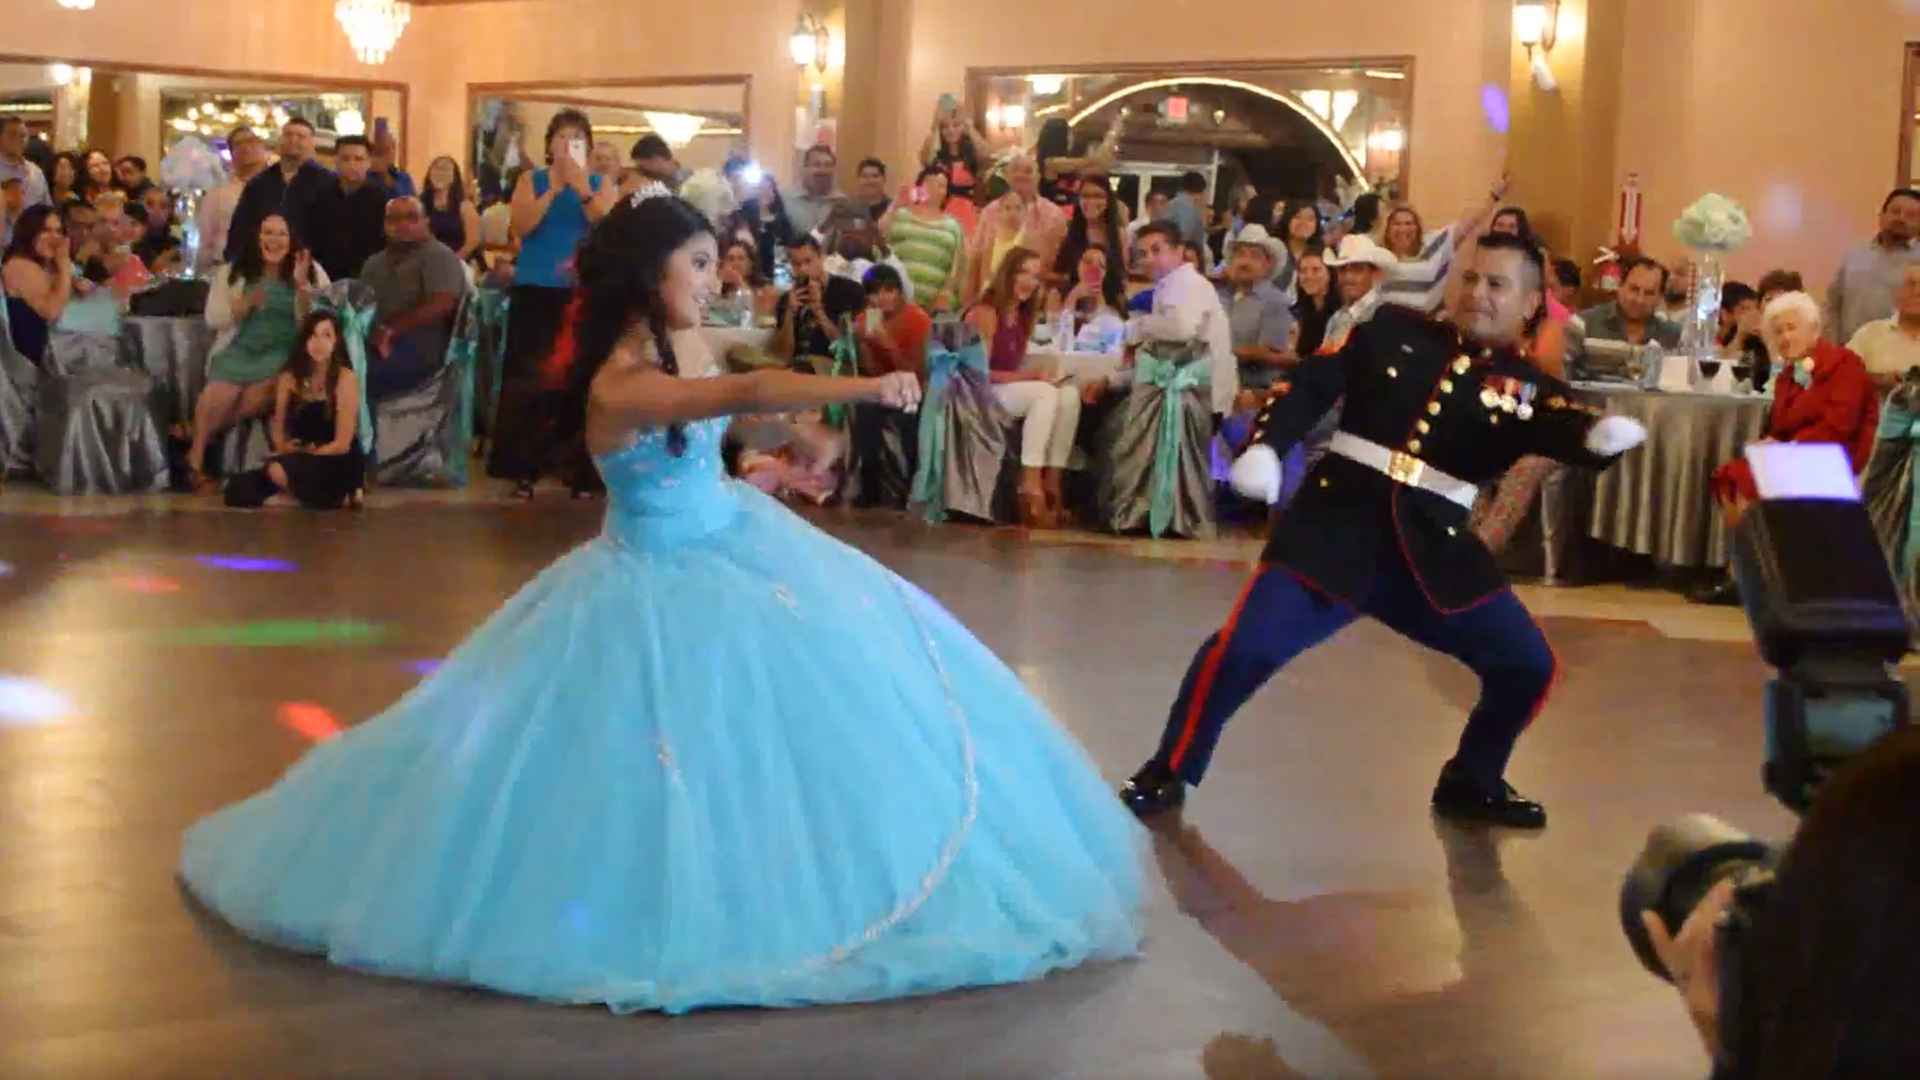 Girl S Epic Dance With Dad Is Highlight Of Her Quinceanera